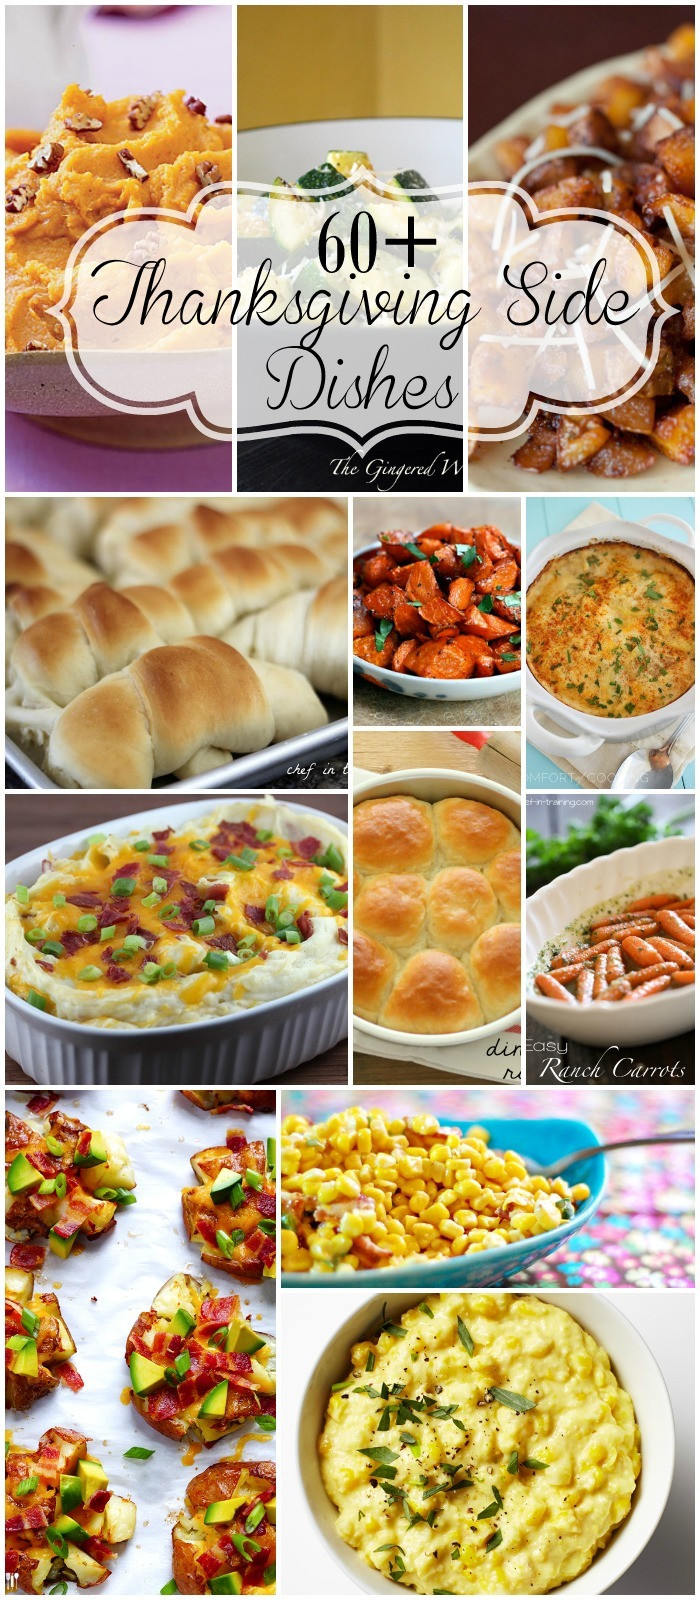 Thanksgiving Dinner Side Dishes Recipes  60 Thanksgiving Sides Recipes